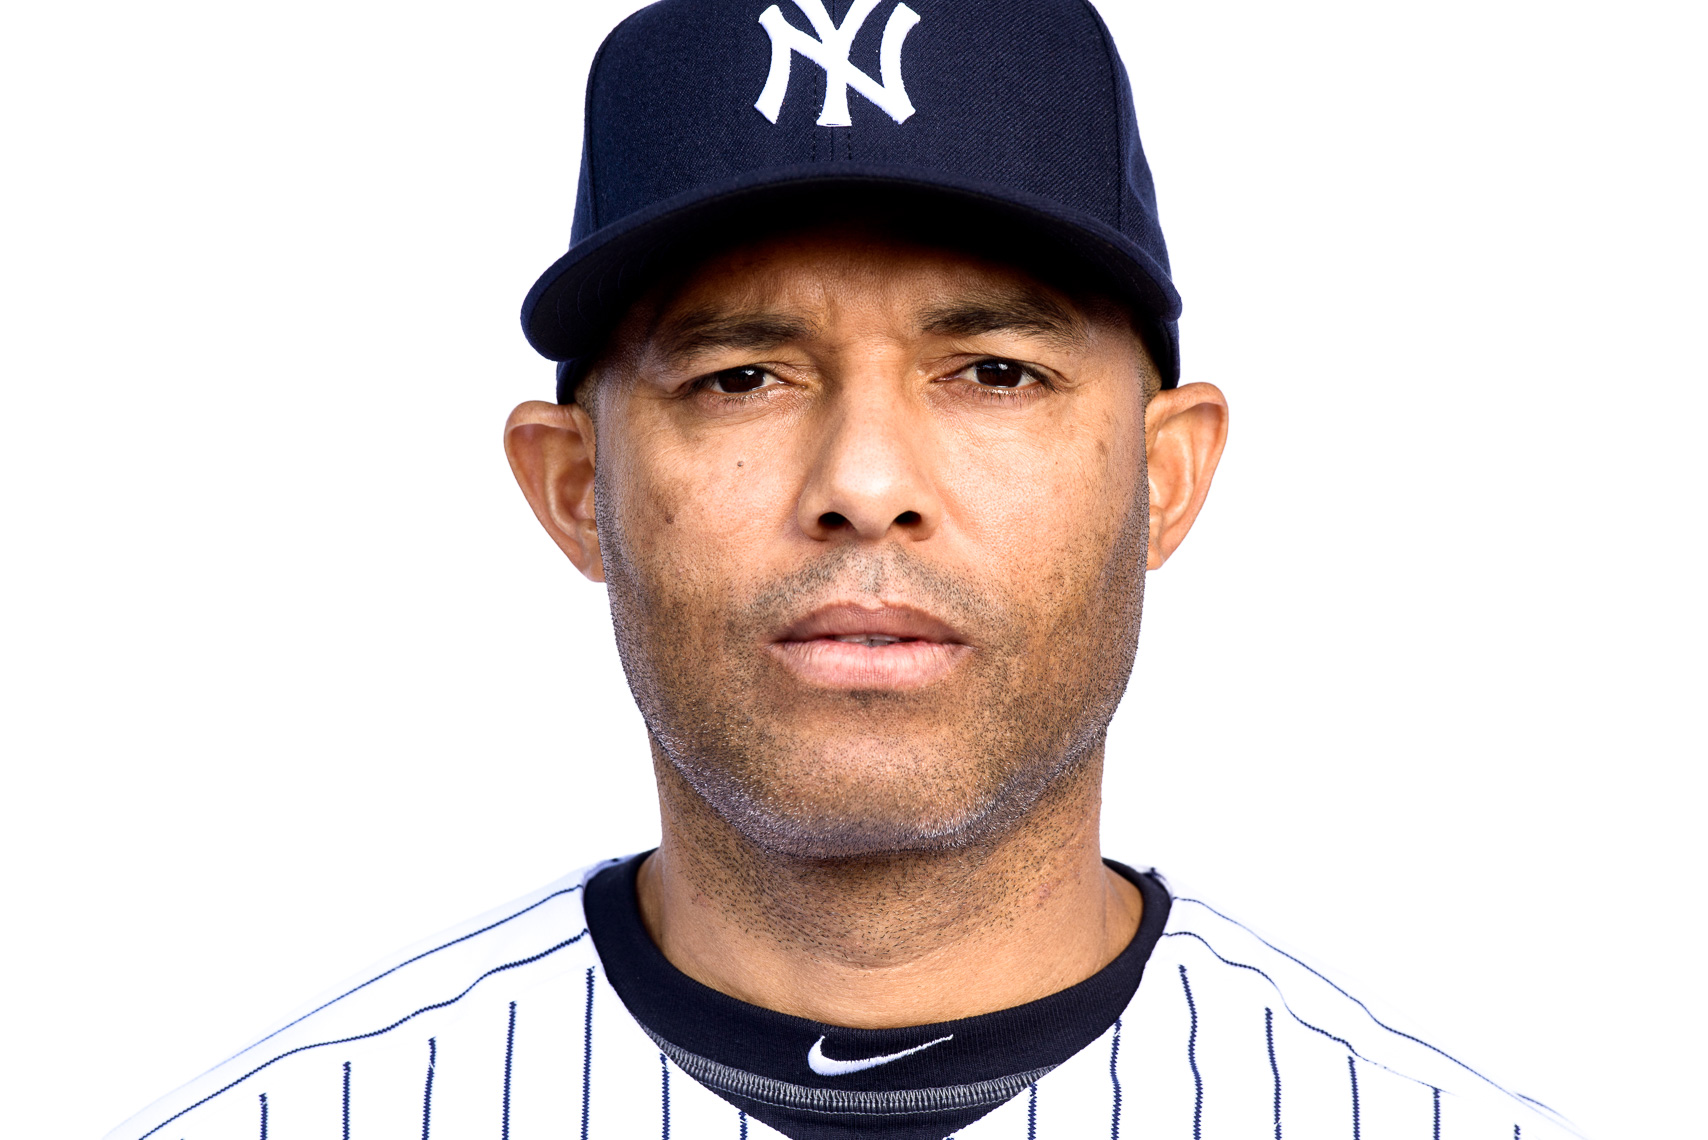 Mariano Rivera photographed by Nashville Photographer Jason Myers